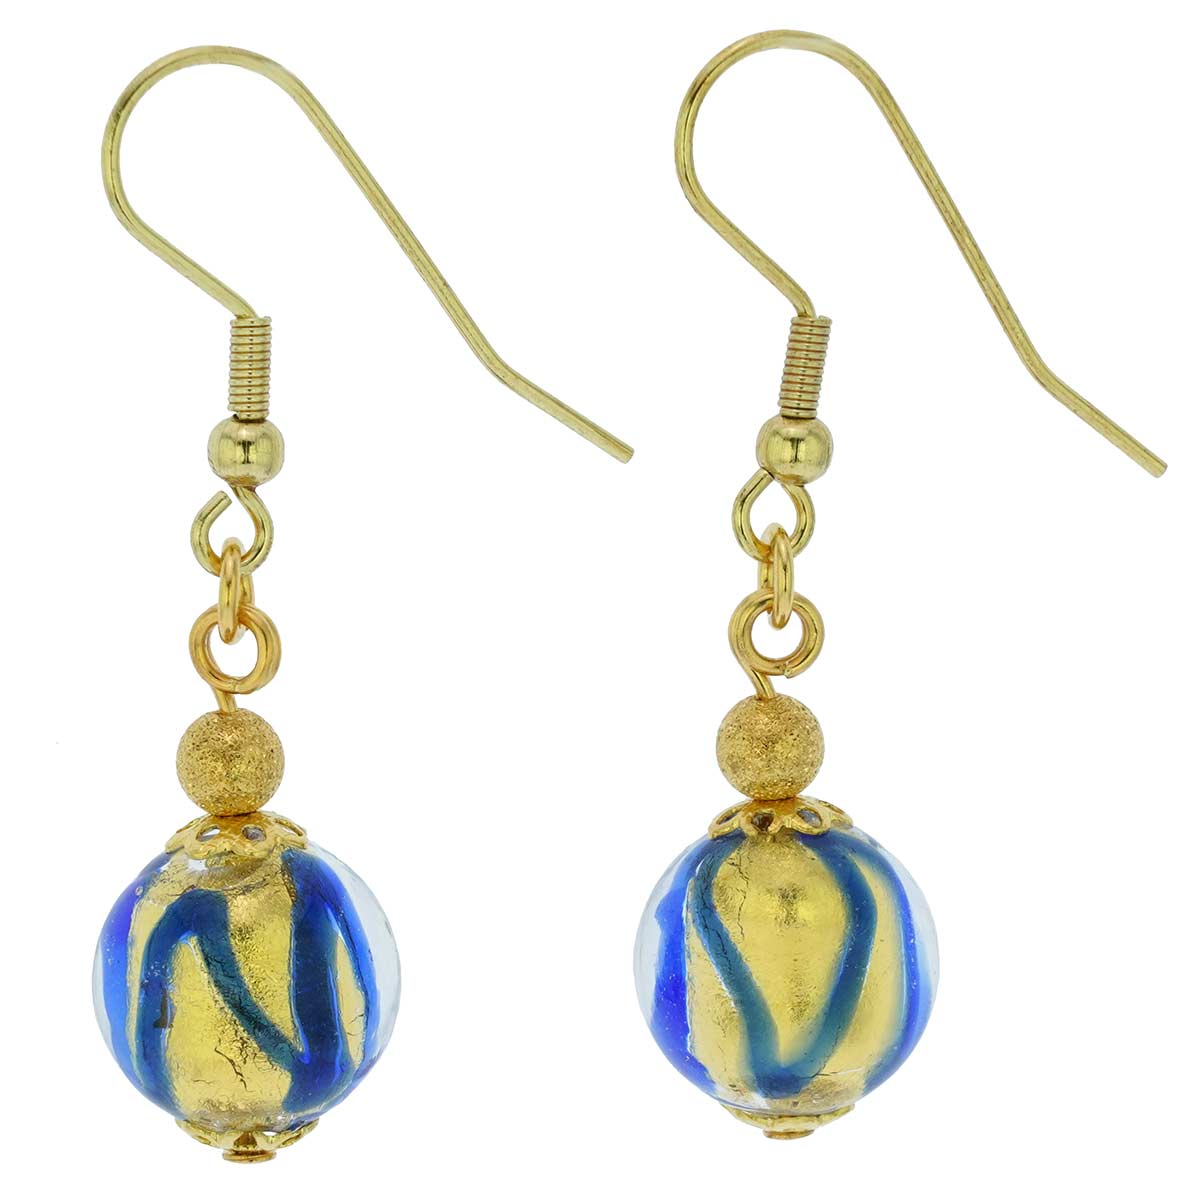 Royal Blue Ball earrings